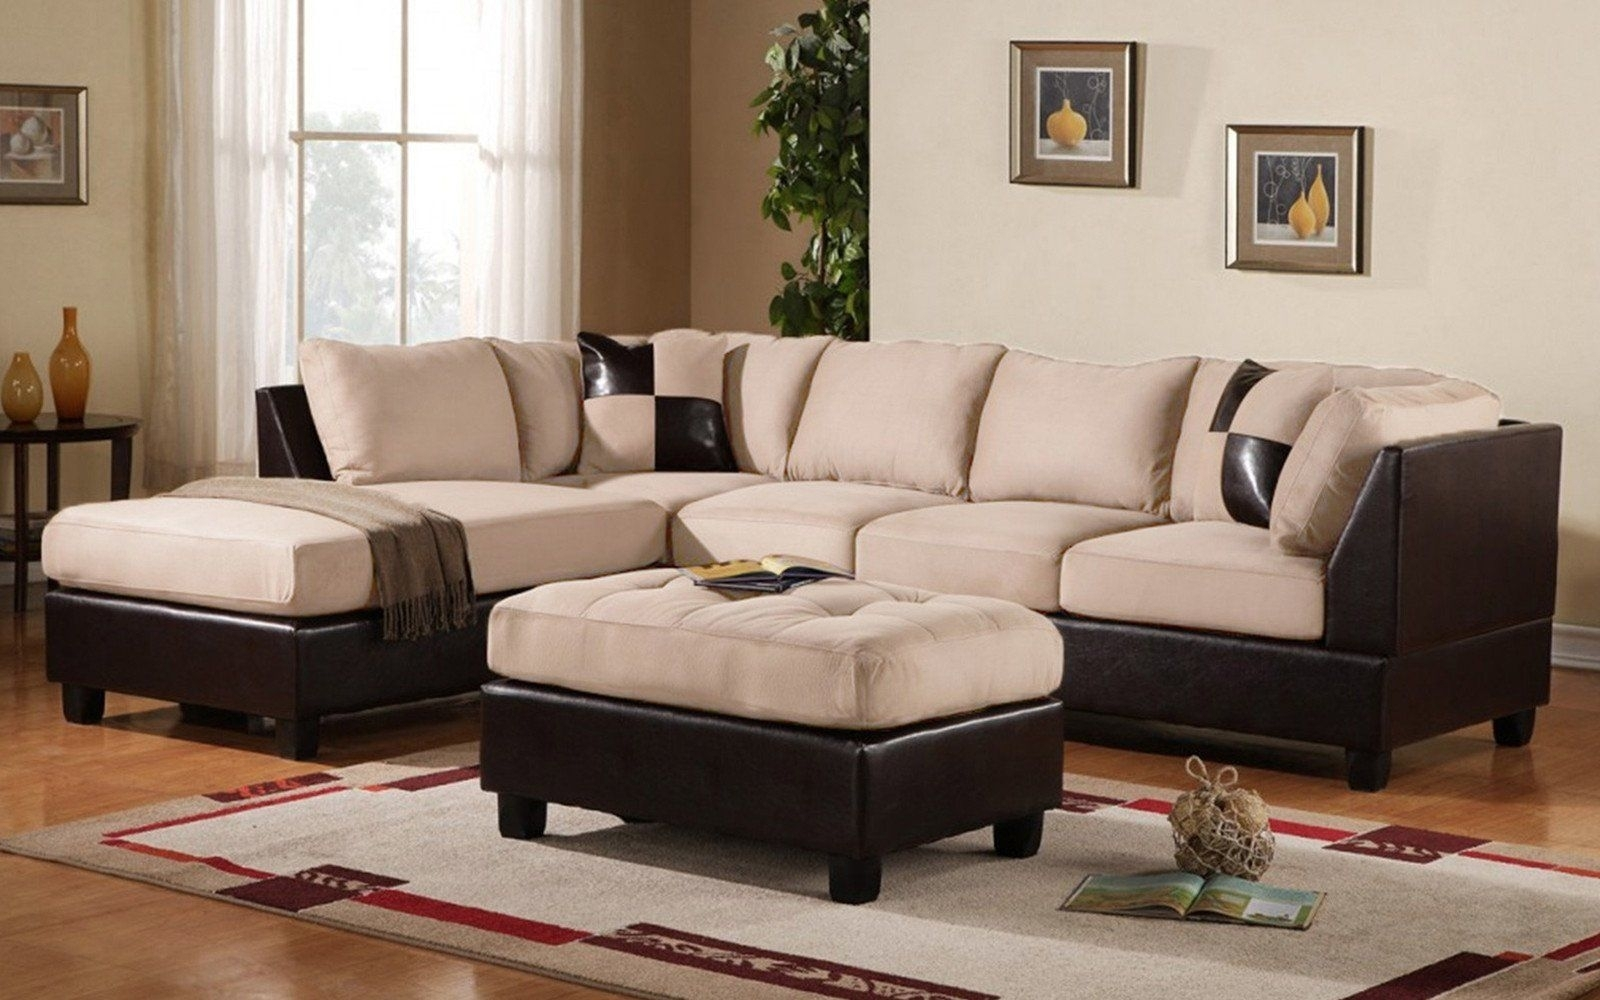 Koko Classic (3) Piece Microfiber And Faux Leather Sectional With Intended For Burton Leather 3 Piece Sectionals With Ottoman (View 9 of 25)